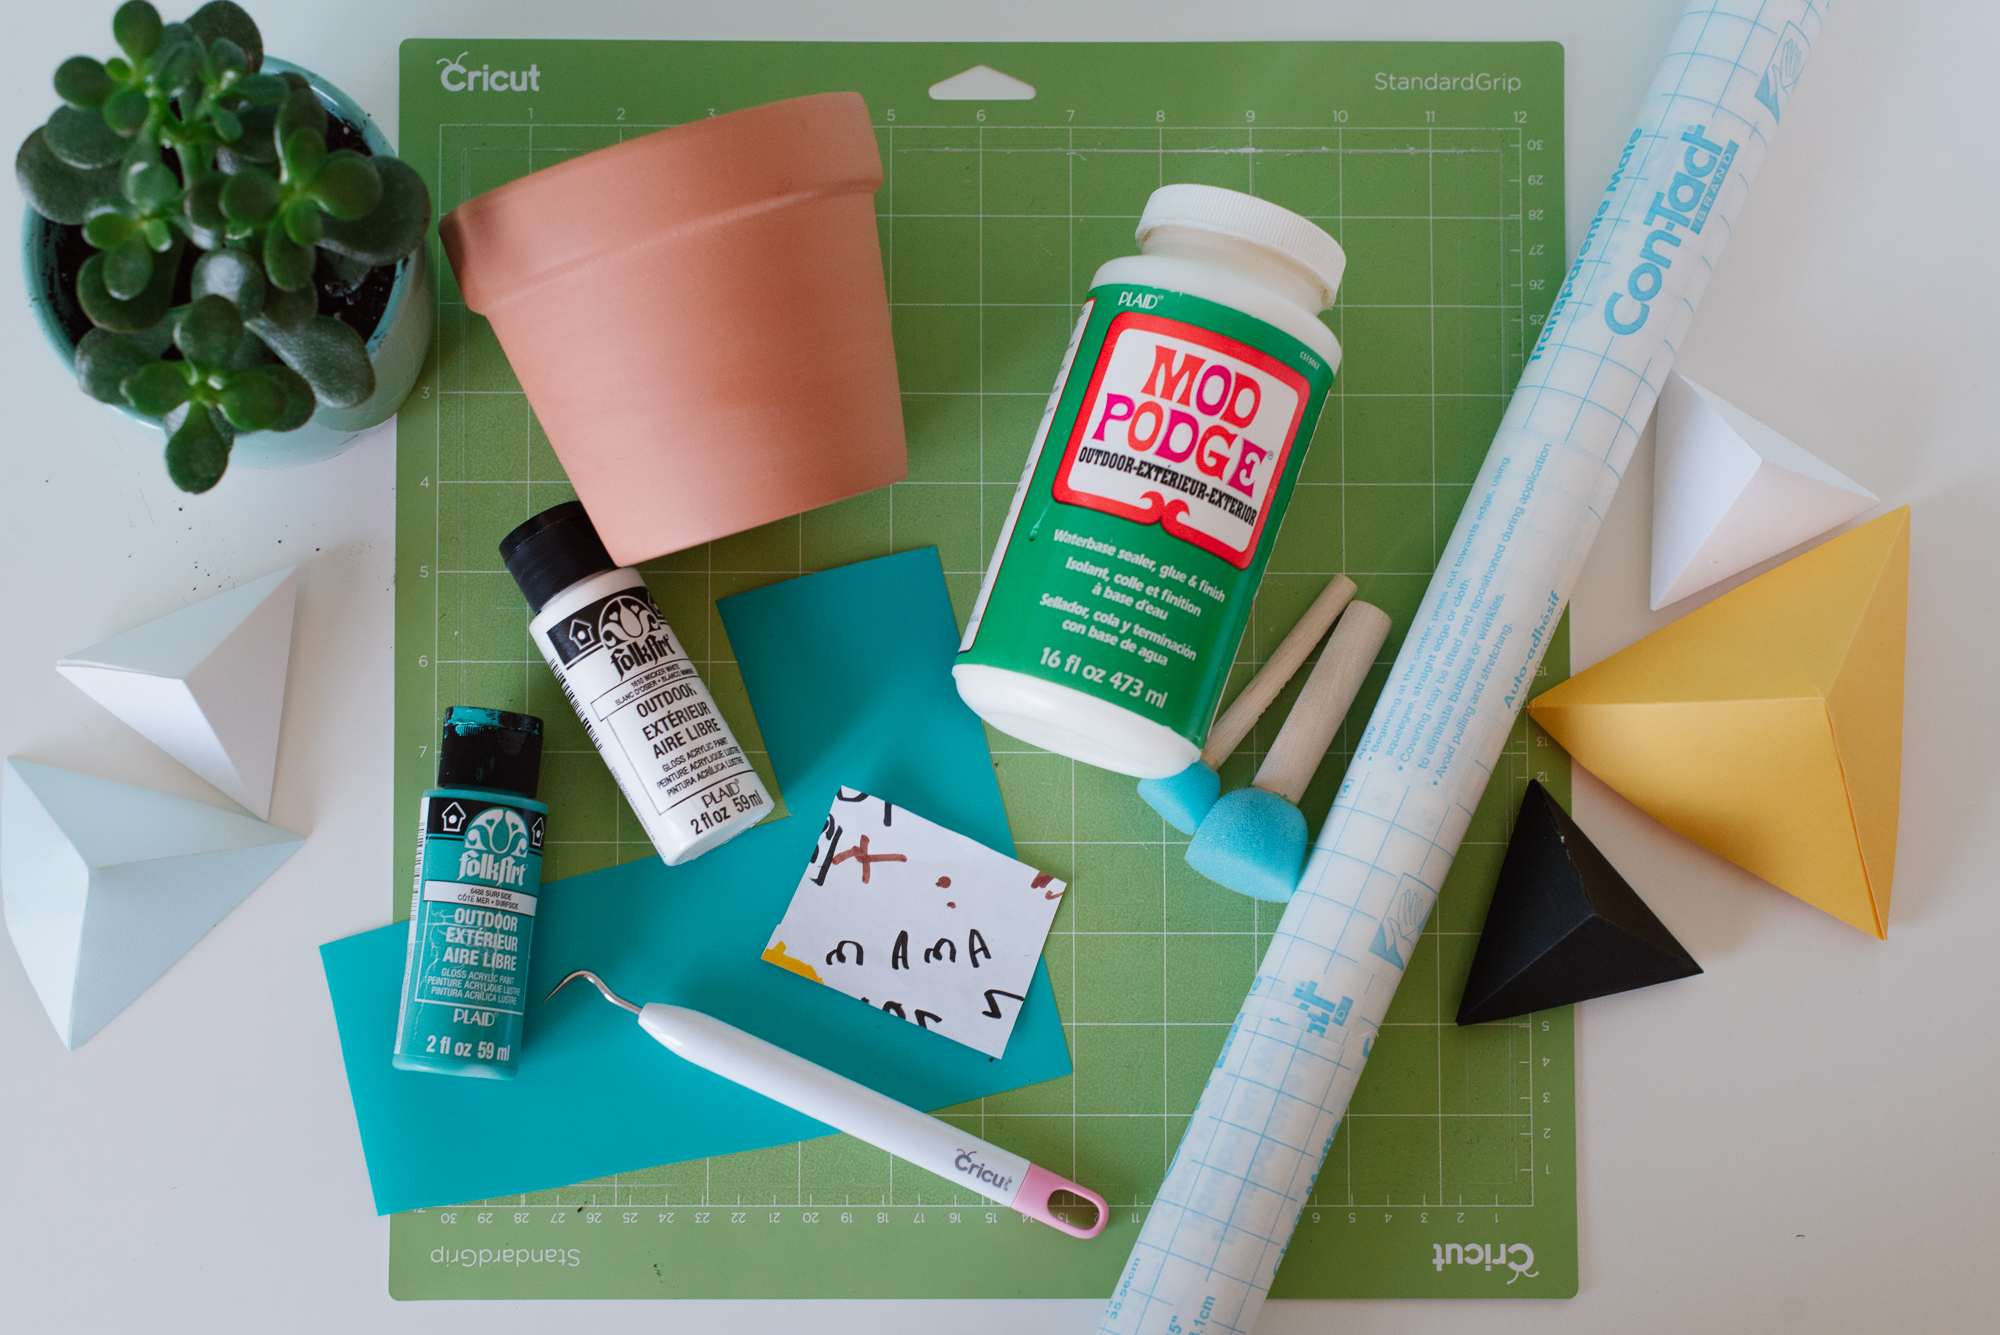 A flat lay of supplies needed to make a DIY vinyl flower pot using the Cricut Air 2. Some of the supplies shown are a clay pot, paint, and a jade plant.